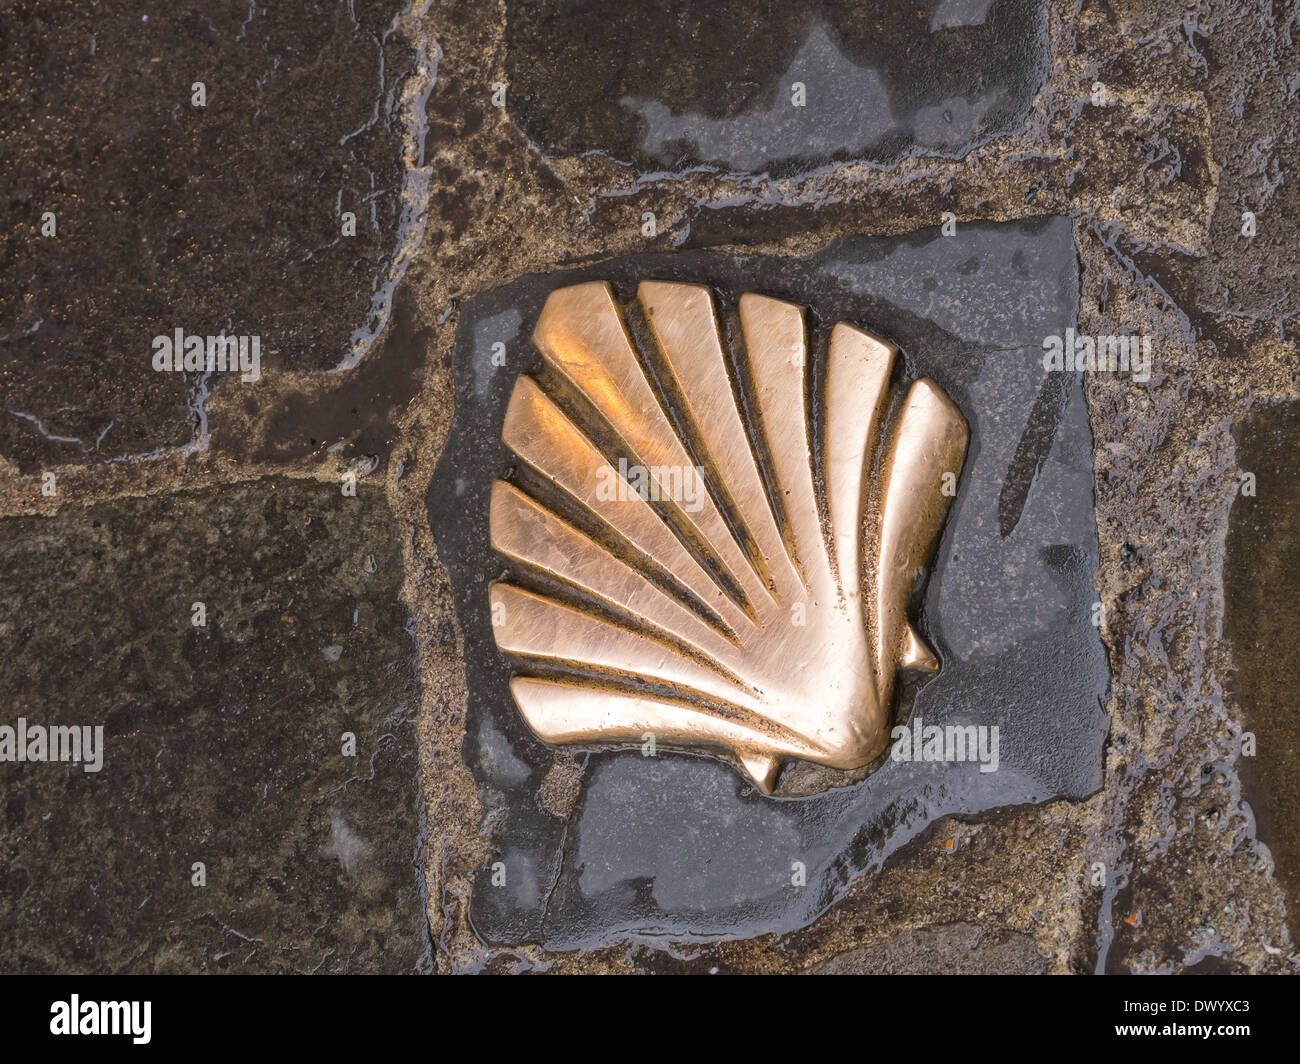 A brass scallop shell set into the pavement in Brussels, Belgium. This is a marker for the Way of St. James pilgrimage walk. - Stock Image